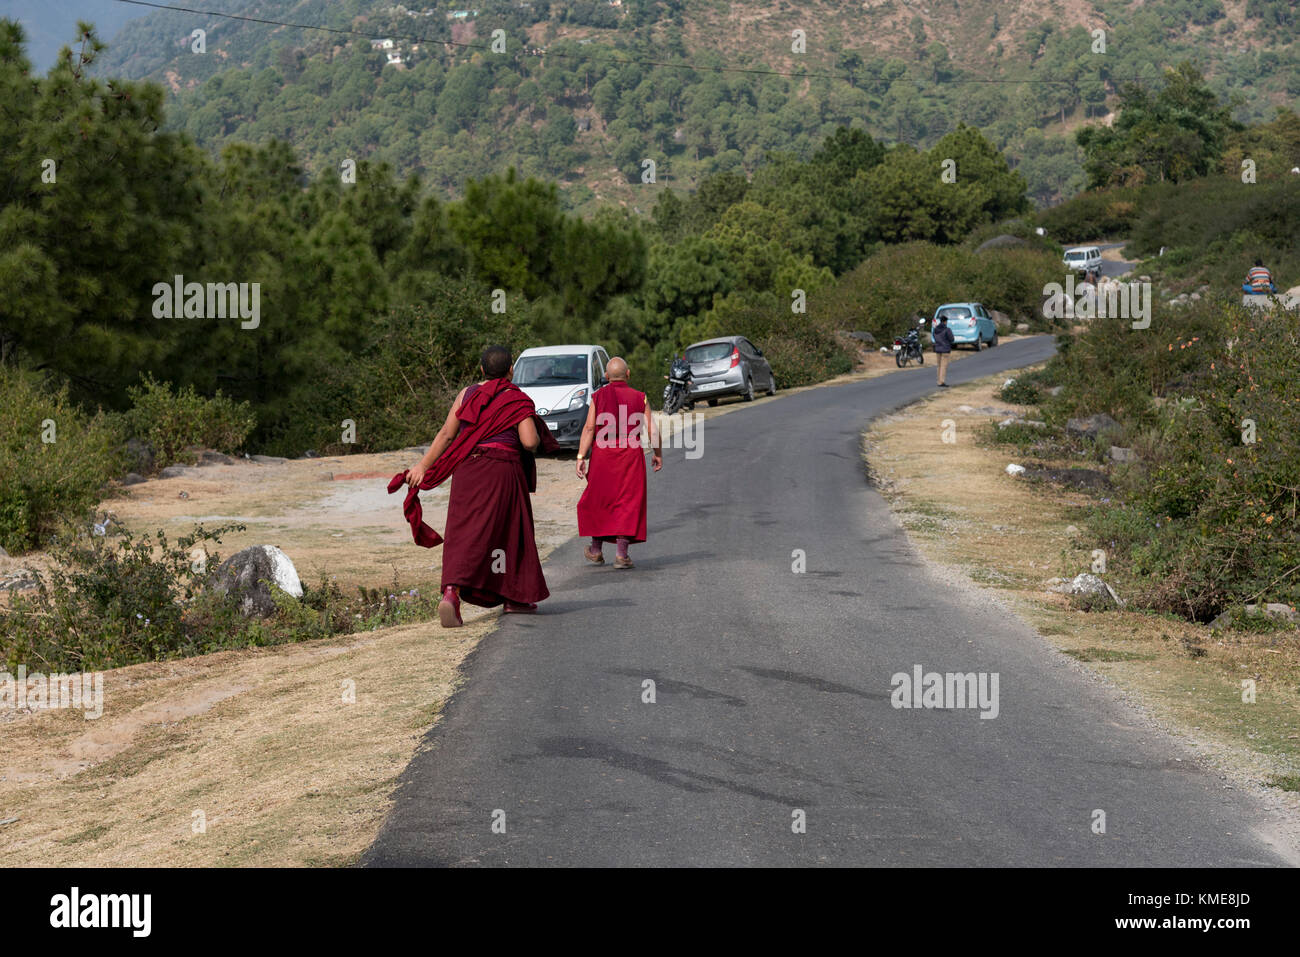 Two monks walking along the road in a rural area on the way to their monastery. - Stock Image